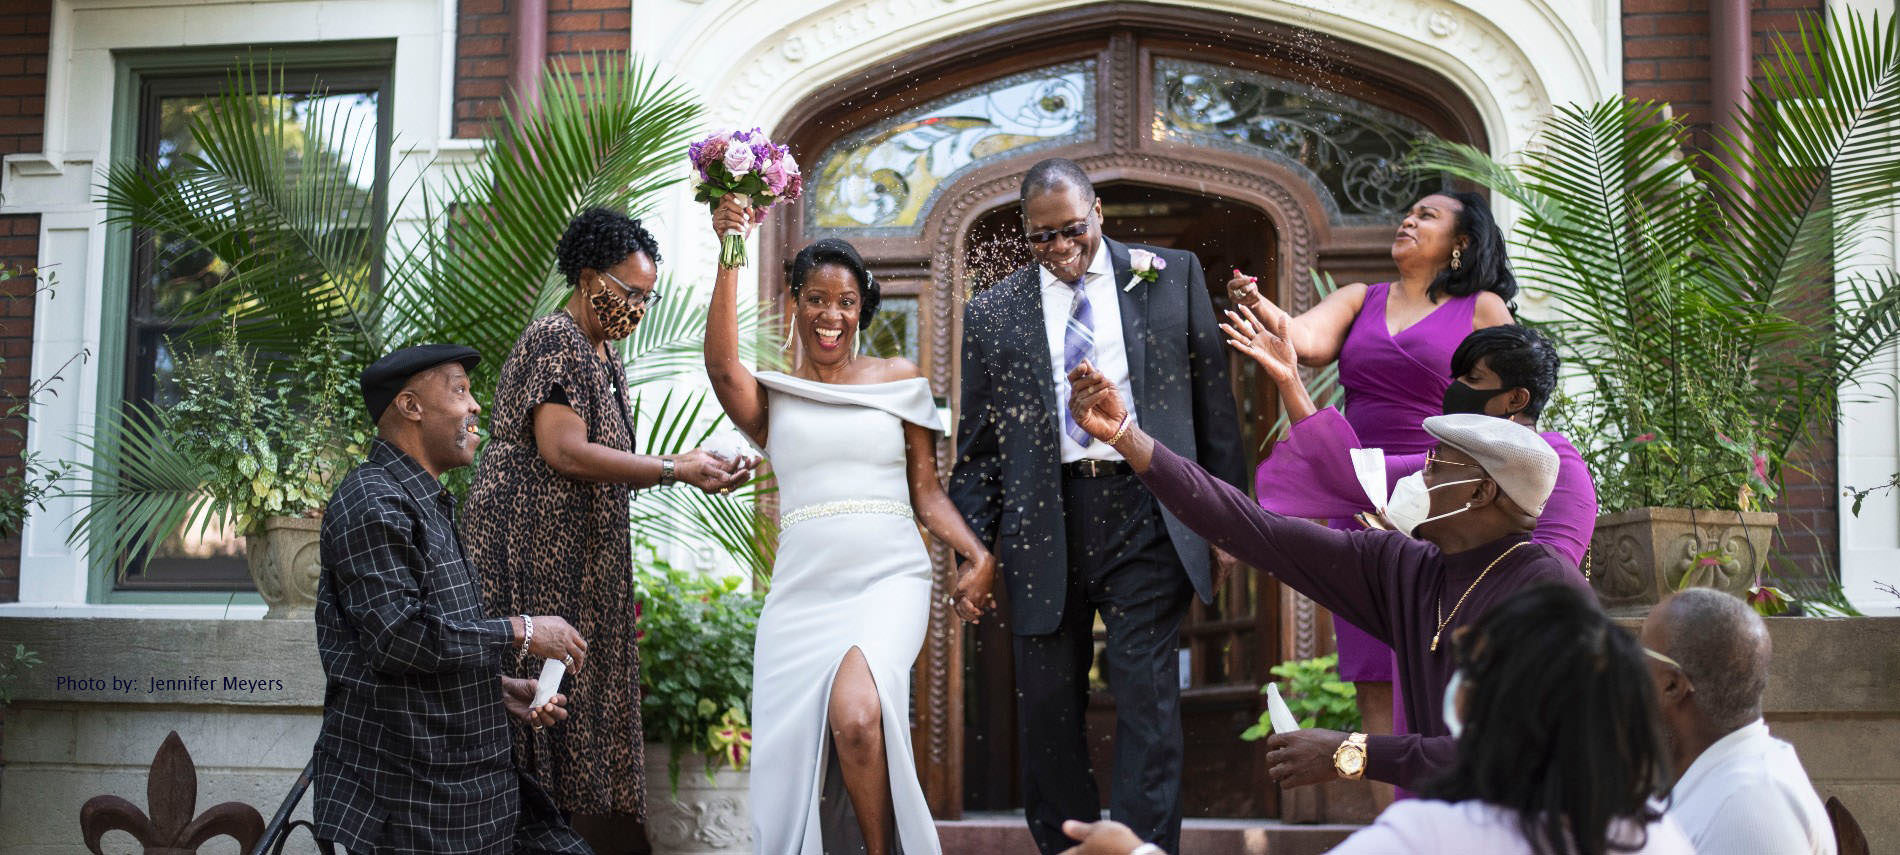 Bride and Groom exiting Mansion front door with guests throwing lavender